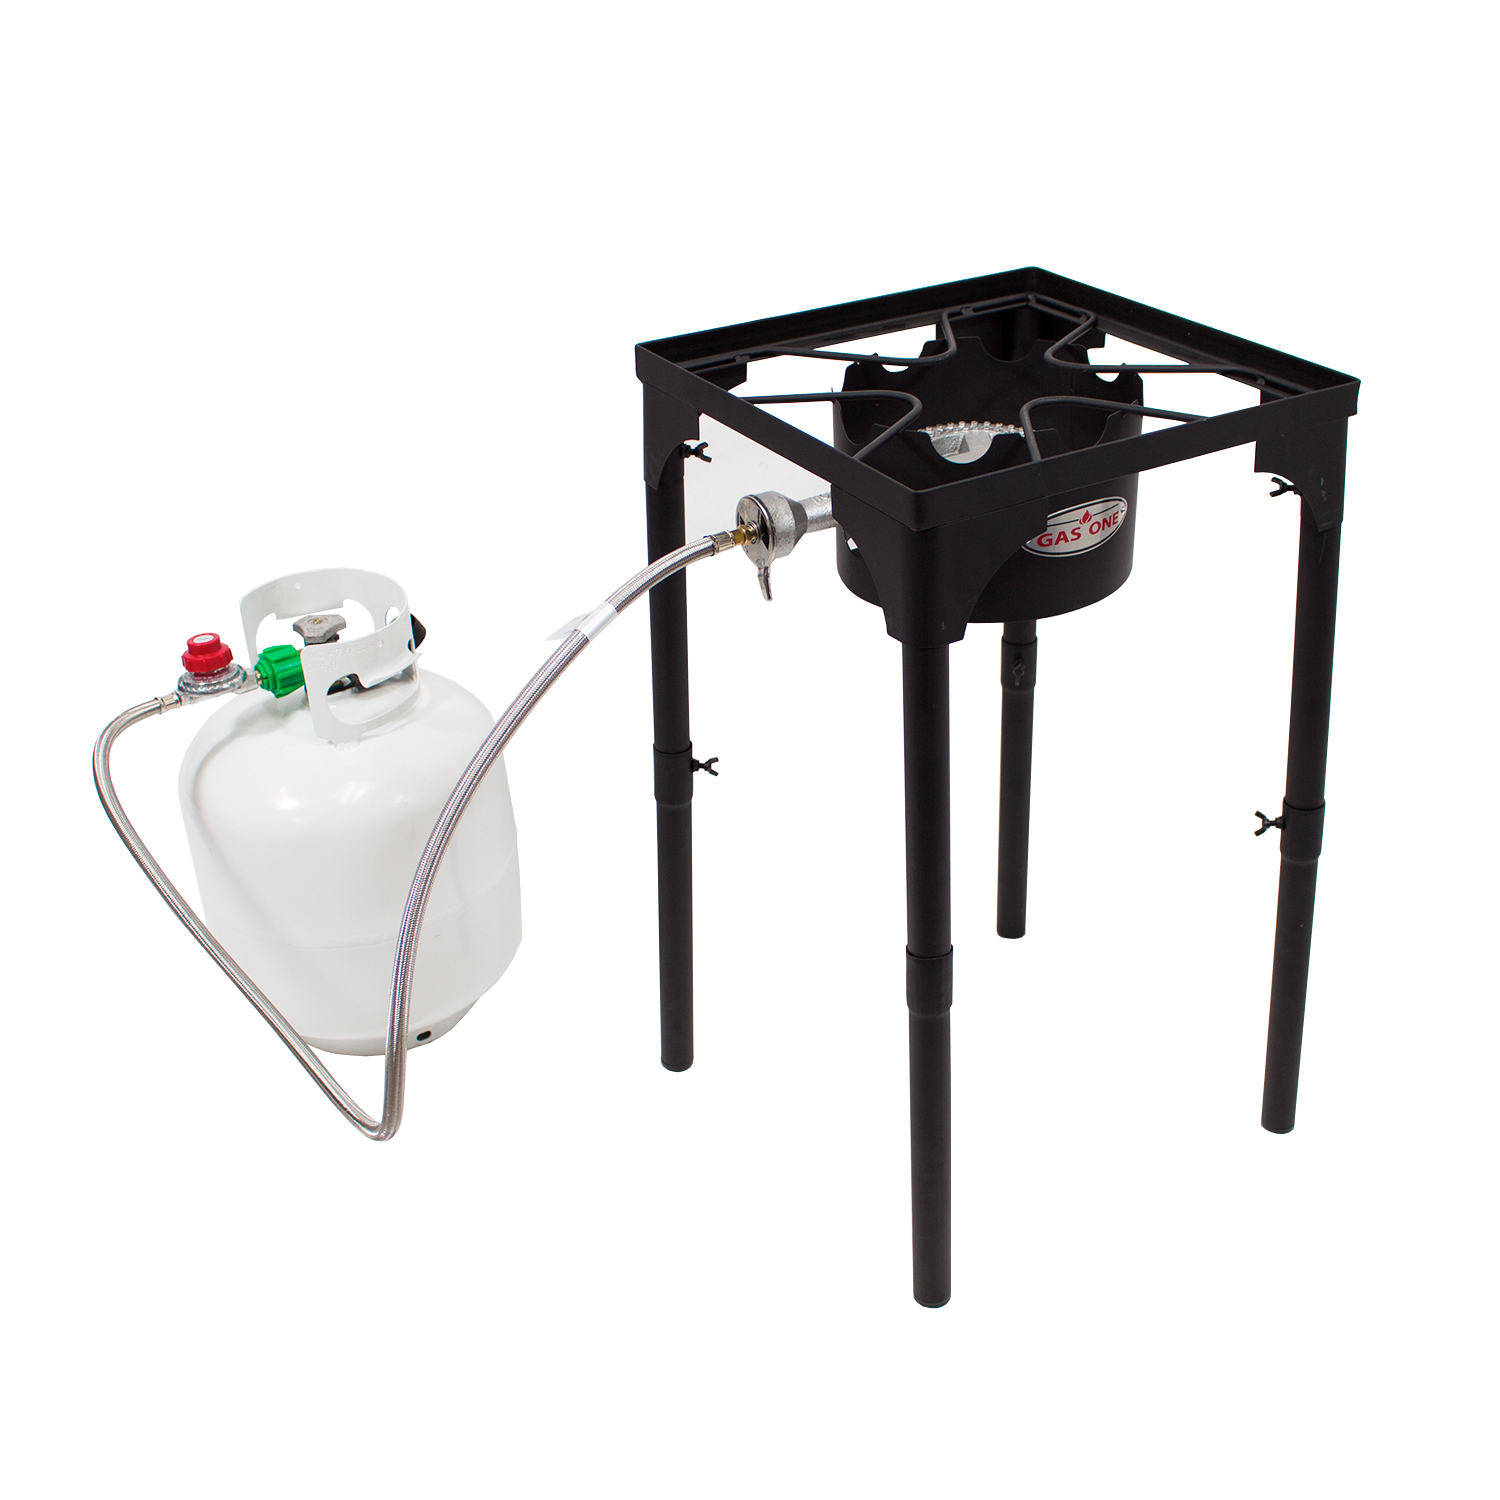 Gas One Portable Propane 100 000 Btu High Pressure Single Burner Outdoor Camp Stove Adjustable Legs Single Burner Outdoor Cooker